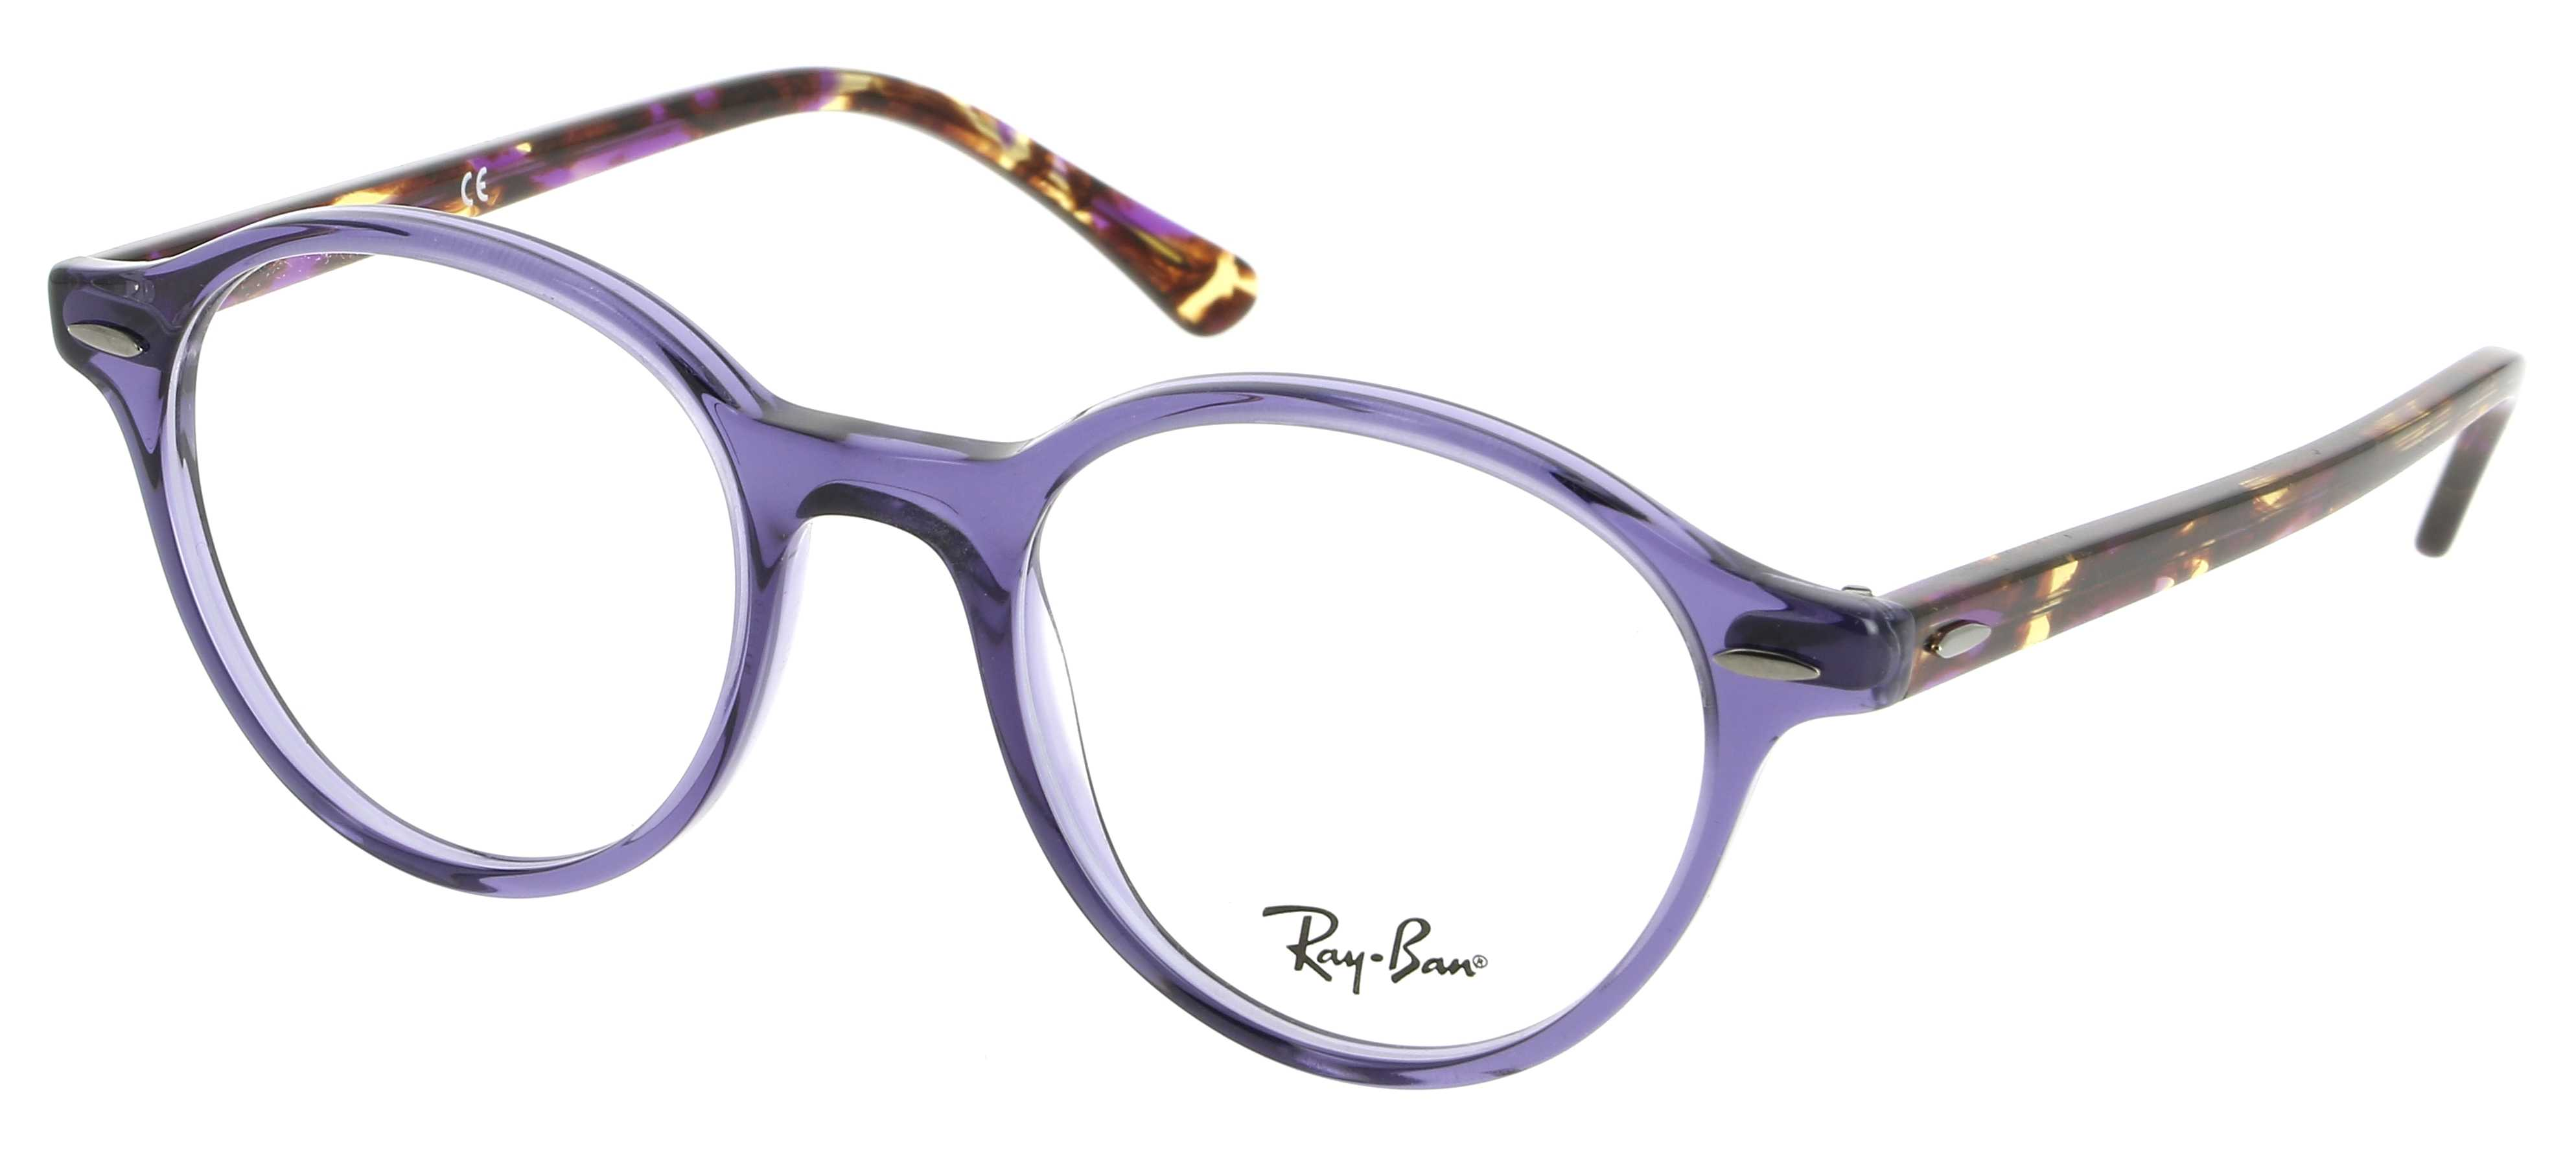 dcd9edbd2fb8a Get Free Shipping on Ray-Ban RX Eyeglasses RX7118